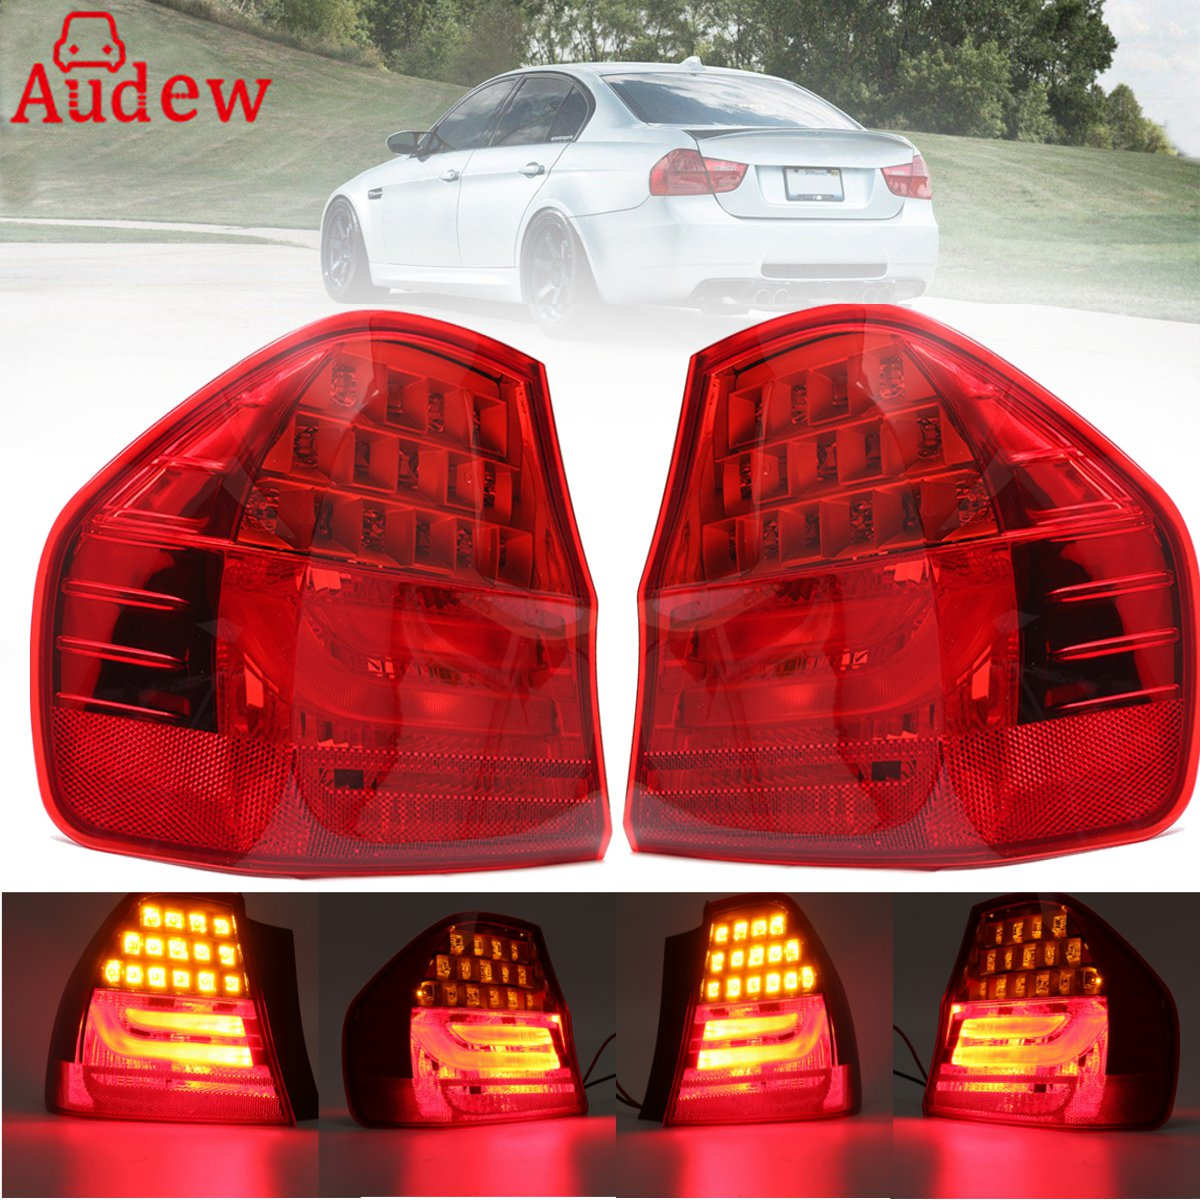 1Pcs Car Rear Tail Turn Lihgt Broke Stop Lamp  LED Light  LEFT / RIGHT Side Light For BMW 3 SERIES E90 2008-2011 free shipping for skoda octavia sedan a5 2005 2006 2007 2008 right side rear lamp tail light